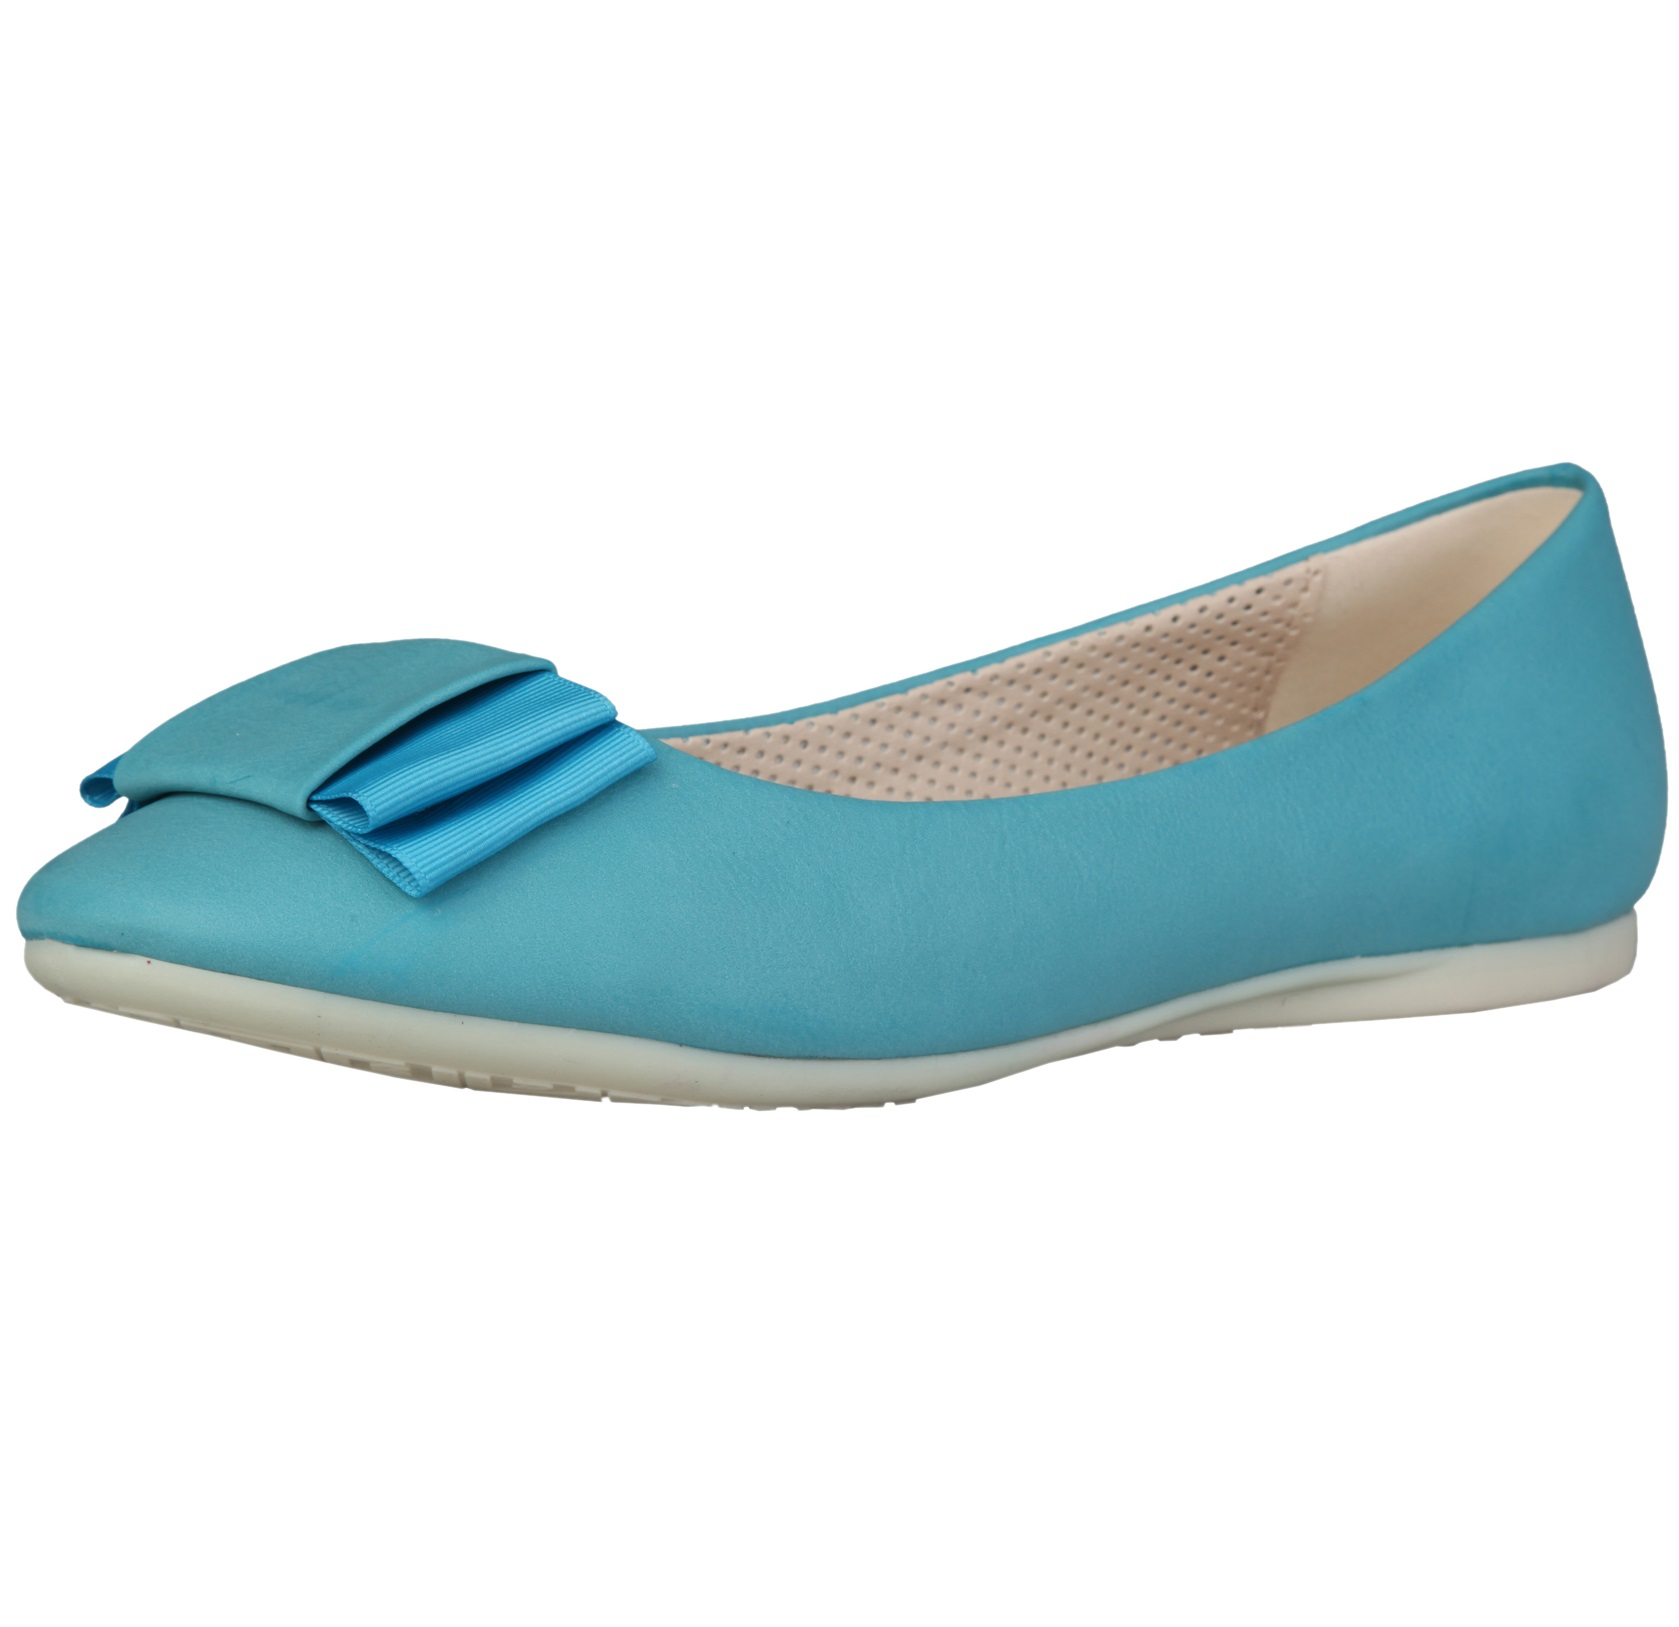 Sofia Loes Flat Shoes Fiocco Bluette Rf600155